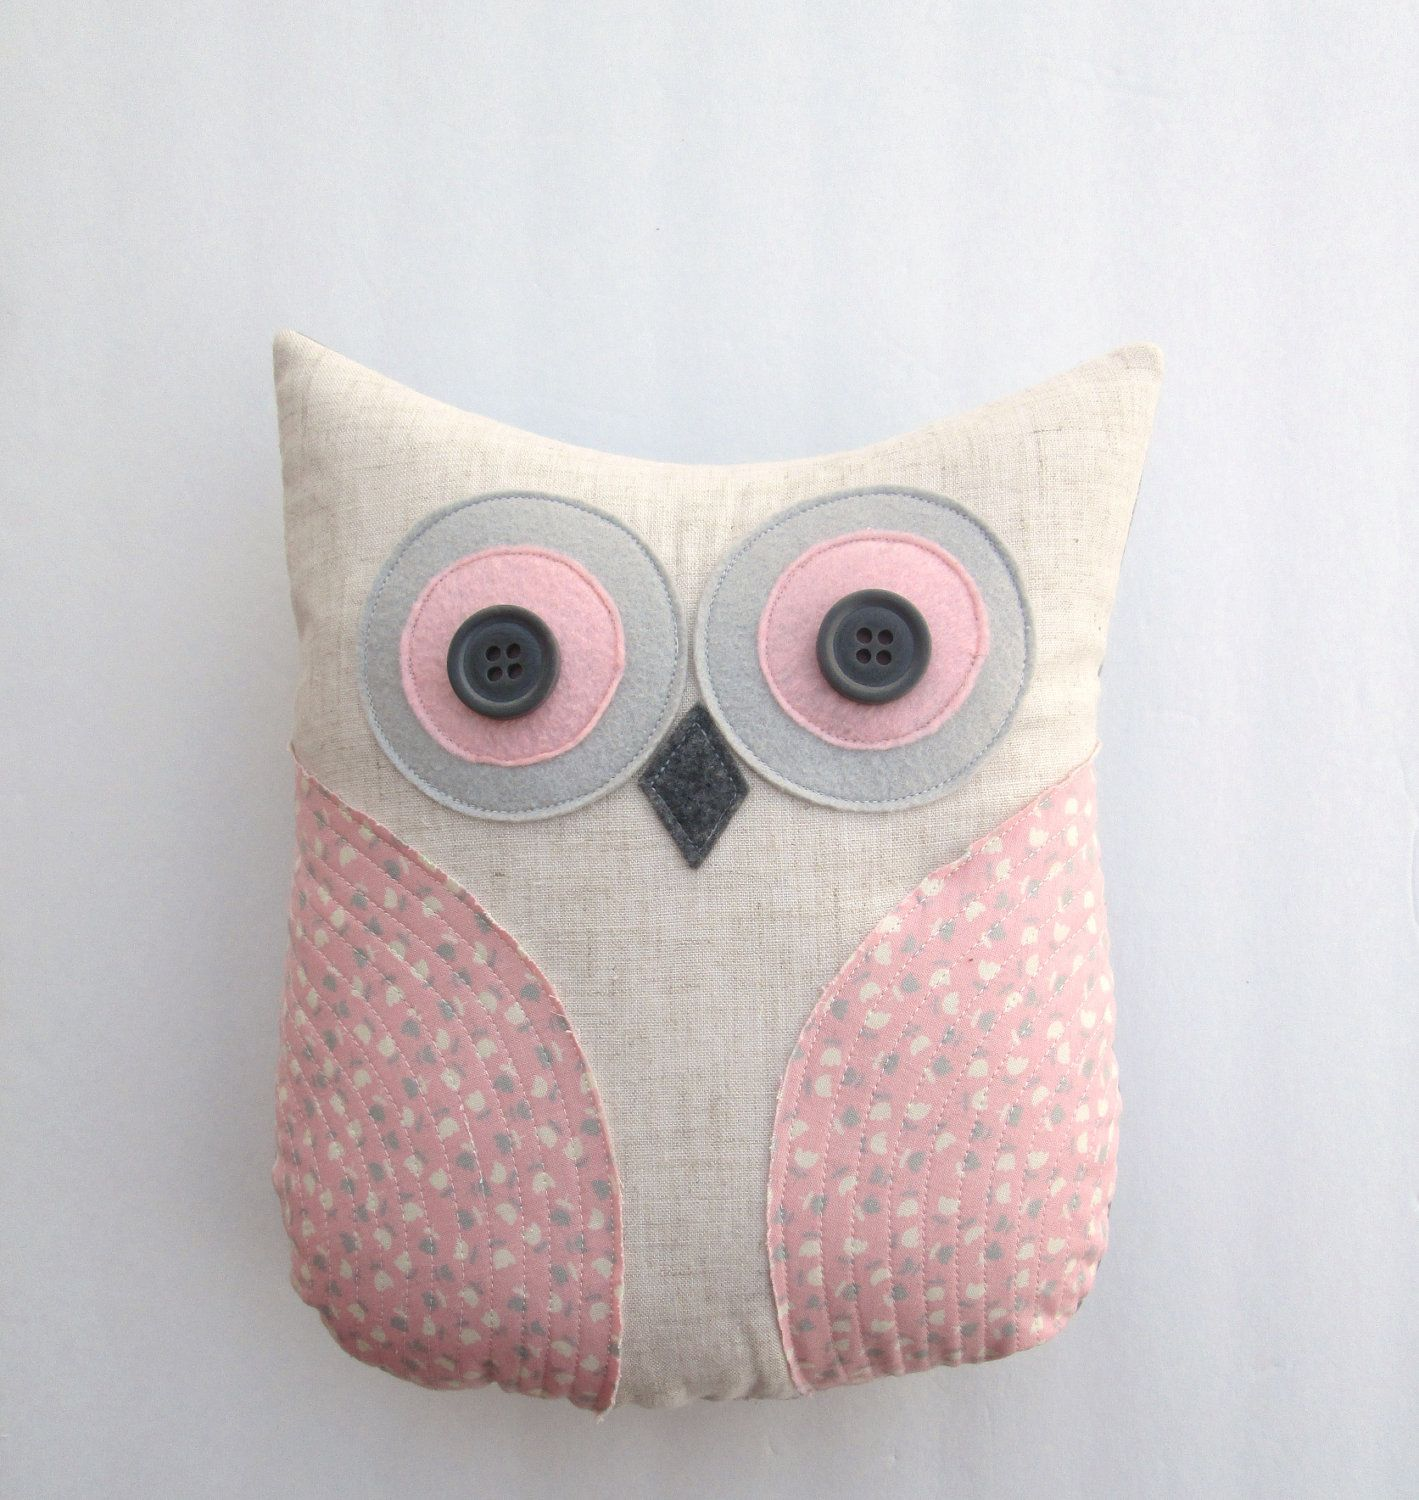 Pink Girly Bedroom Accessories: Pastel Pink Owl Pillow, Decorative Pink, Grey And White